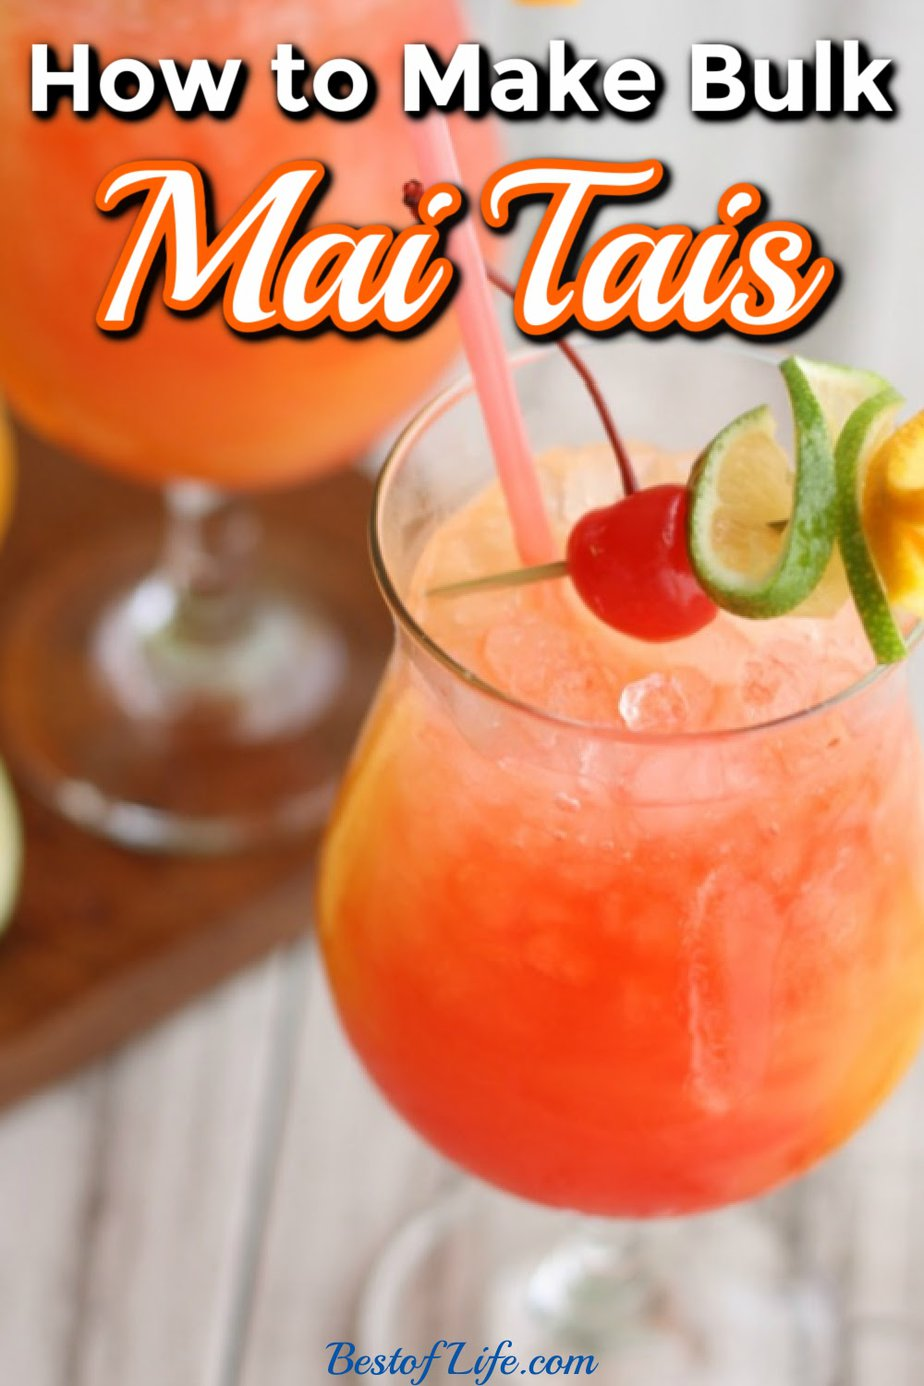 Bulk mai tai recipes can help liven up your party and make planning and hosting a party easier than ever. Serve these mai tai pitcher recipes for parties of any size for a flavorful cocktail guests will love! Party Recipes | Party Cocktail Recipes | Cocktail Pitcher Recipes | Cocktail Recipes | Party Drink Recipes #cocktails #recipe via @thebestoflife